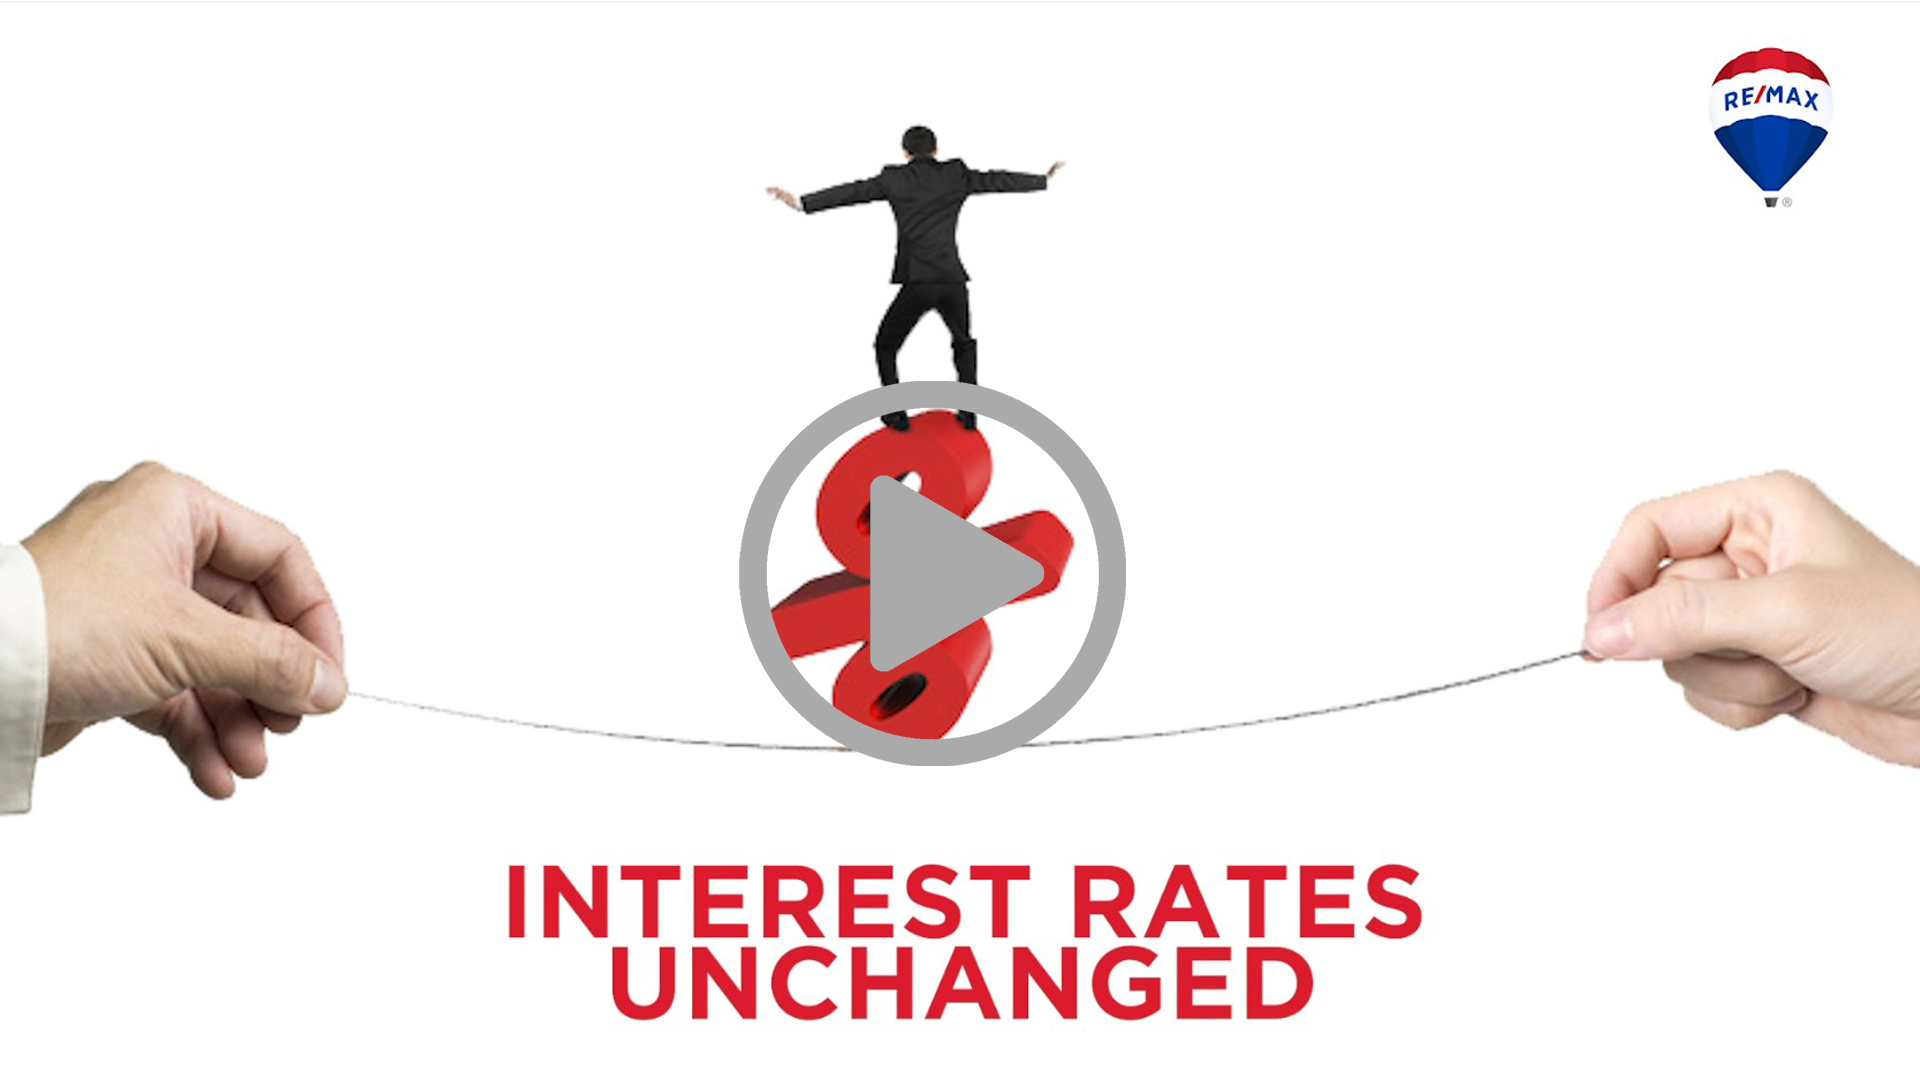 HOMEOWNERS ENJOY ANOTHER QUARTER OF STABLE INTEREST RATES